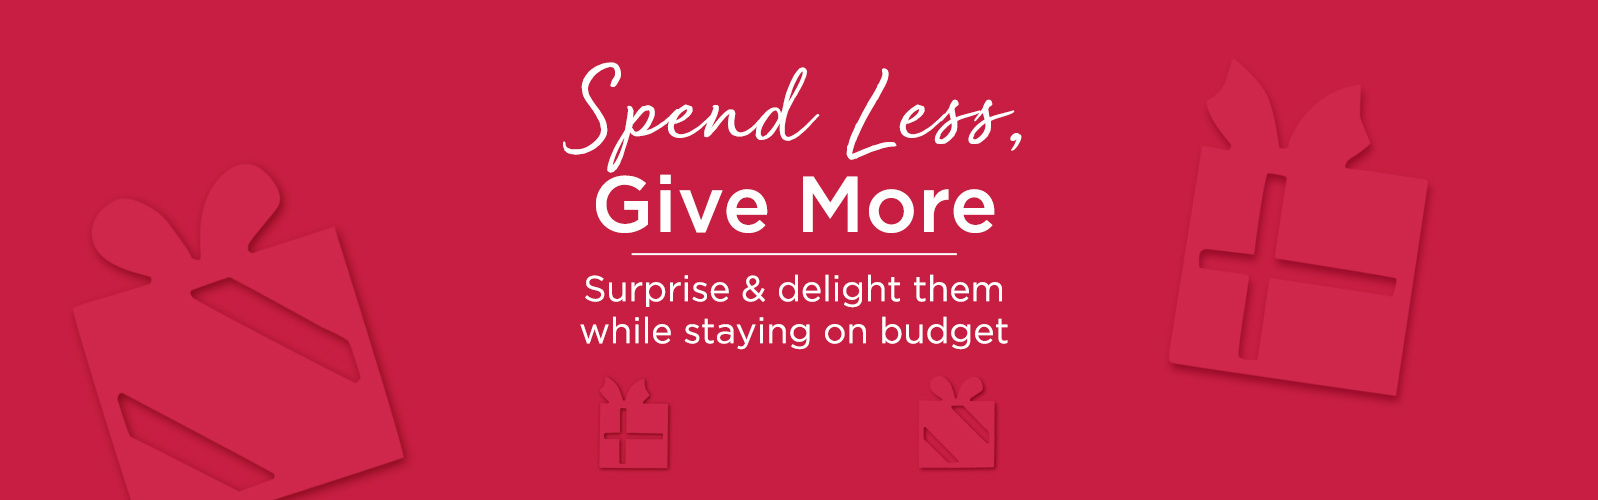 Spend Less, Give More.  Surprise & delight them while staying on budget.